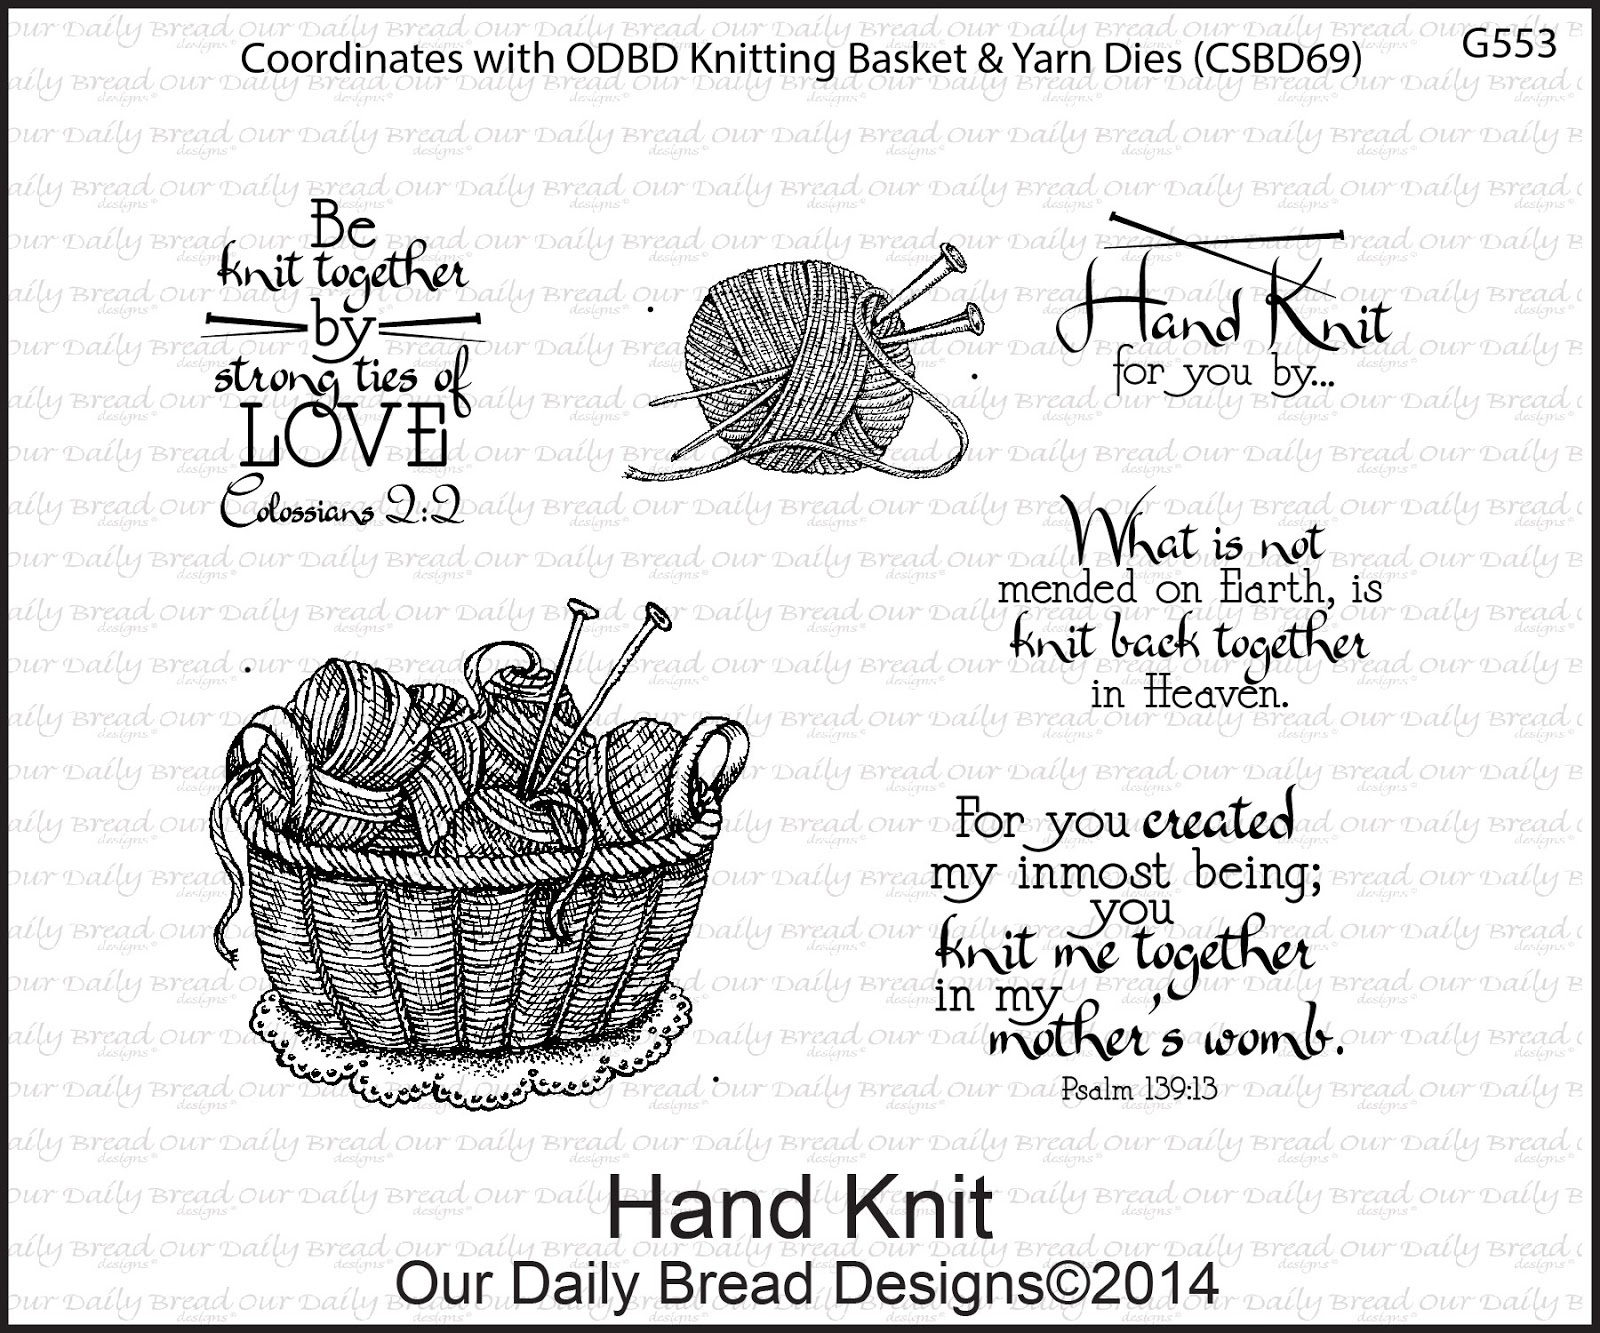 Stamps - Our Daily Bread Designs Hand Knit